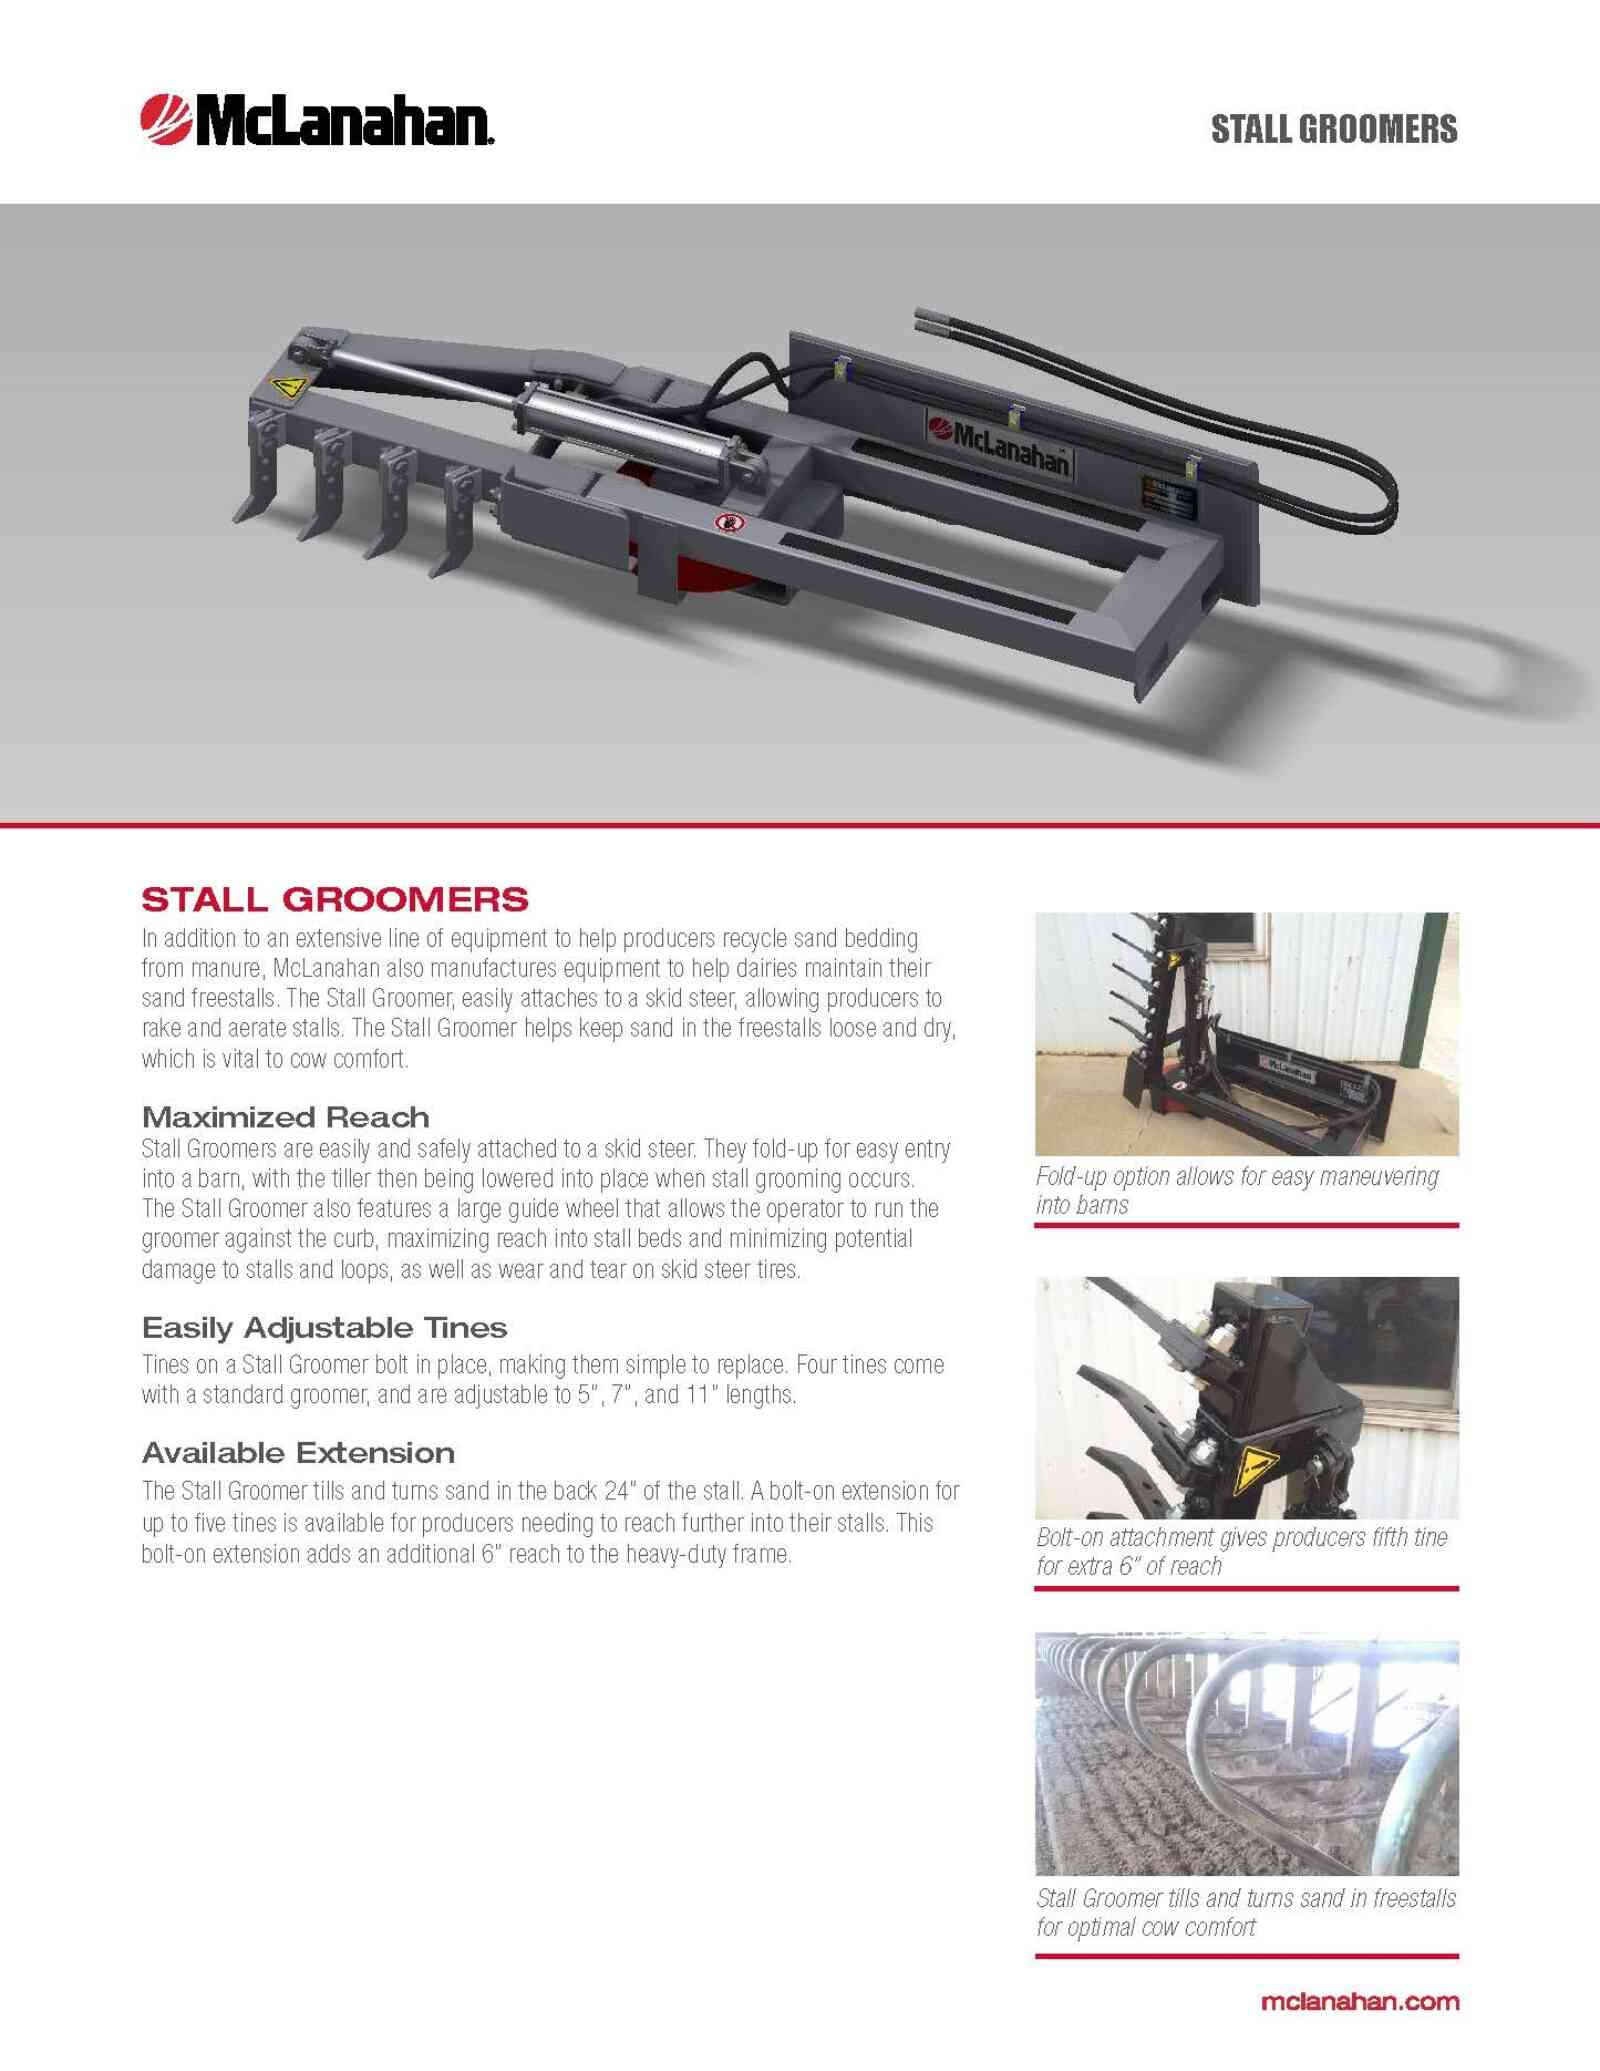 Stall Groomer Brochure Image Page 1